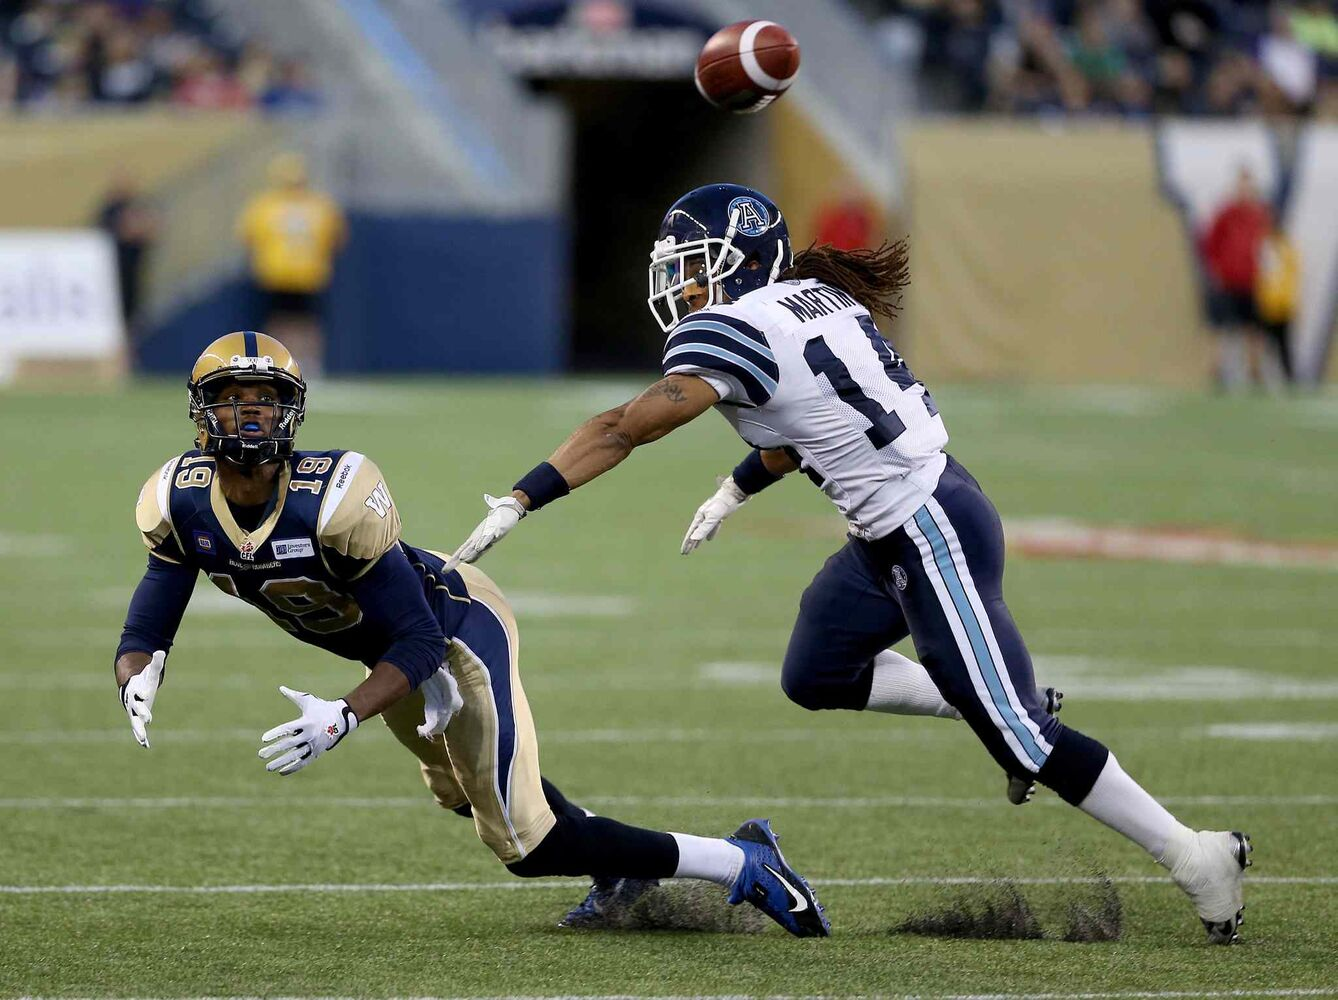 Bombers receiver Aaron Kelly dives for a pass behind Toronto's Andre Martin during the second half. (TREVOR HAGAN / THE CANADIAN PRESS)